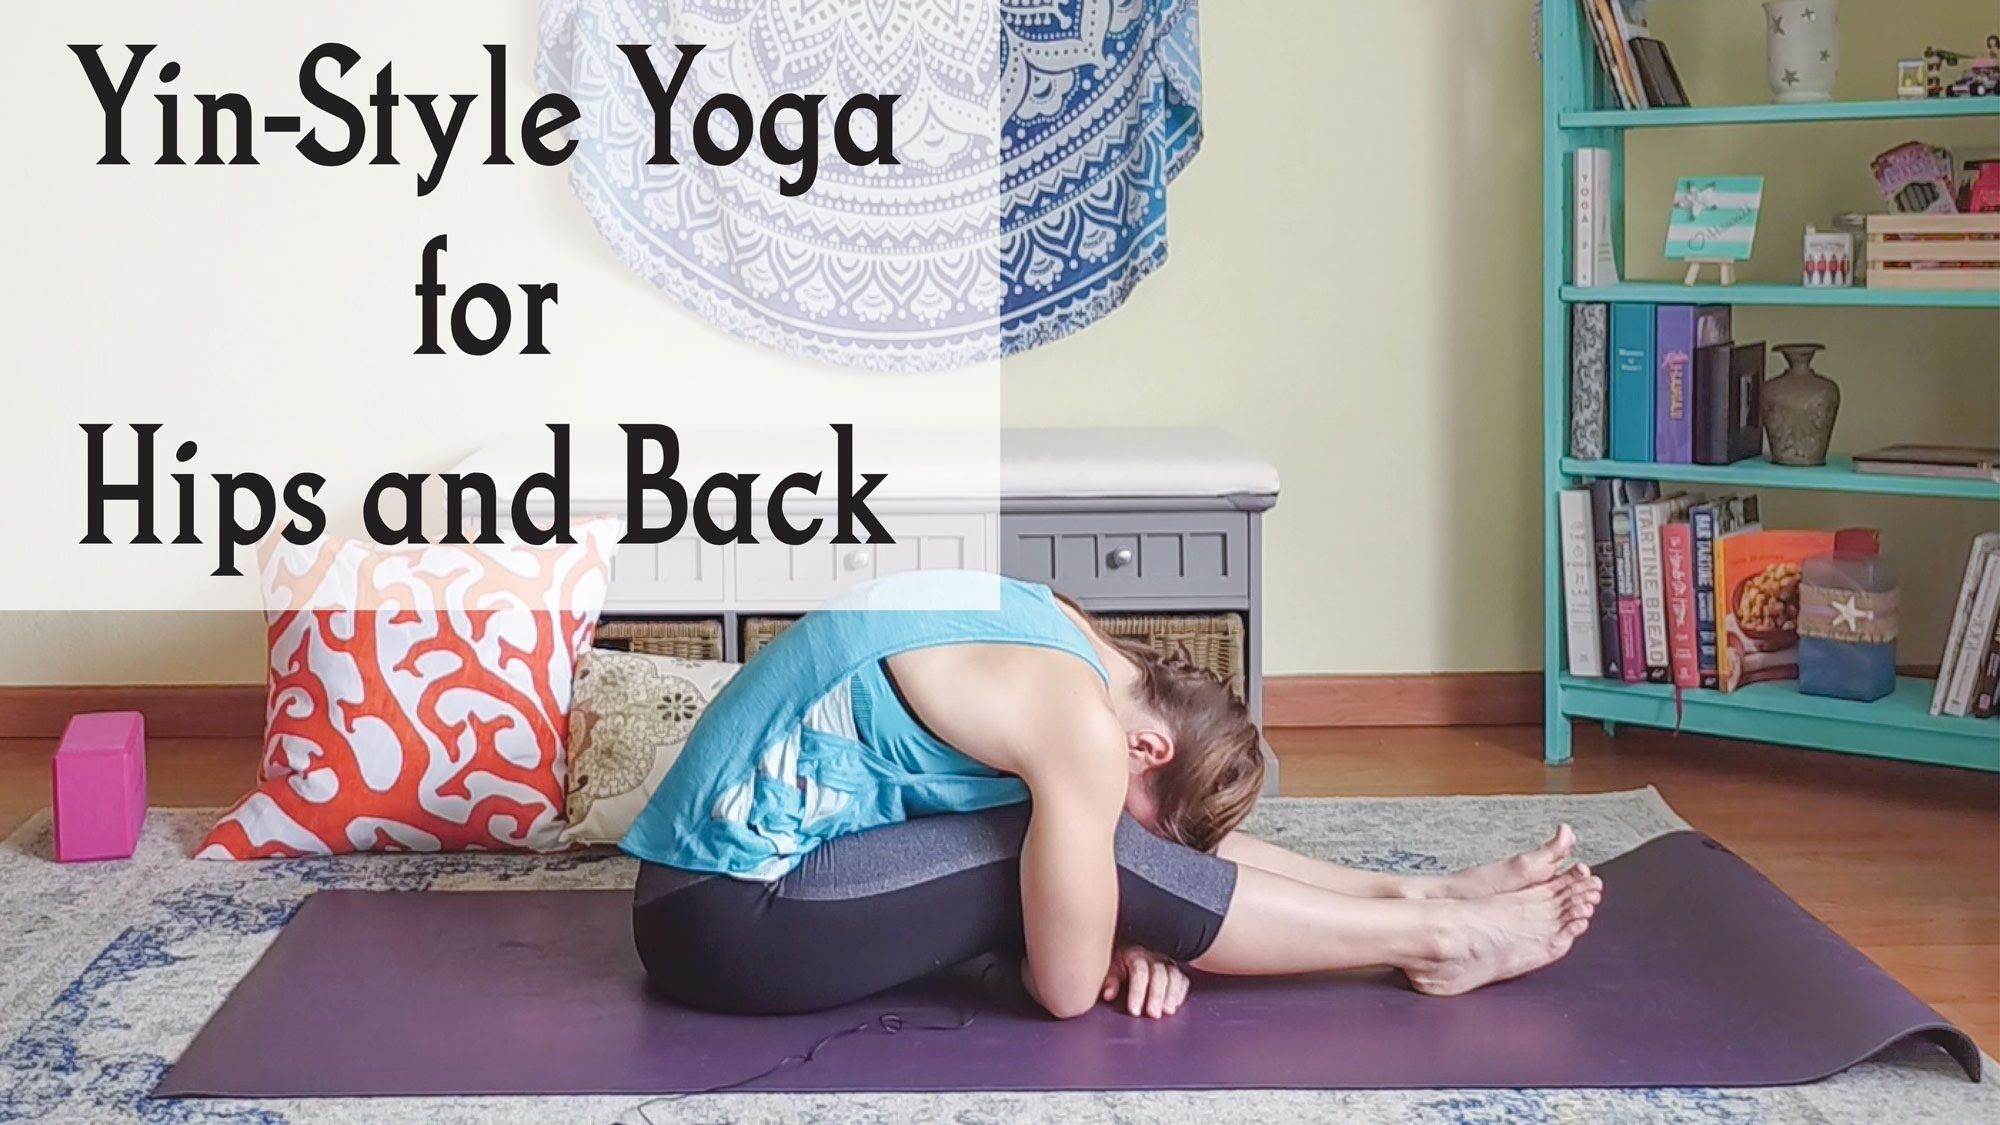 Yin Yoga for Hips and Back - Restorative Yoga for Hips and